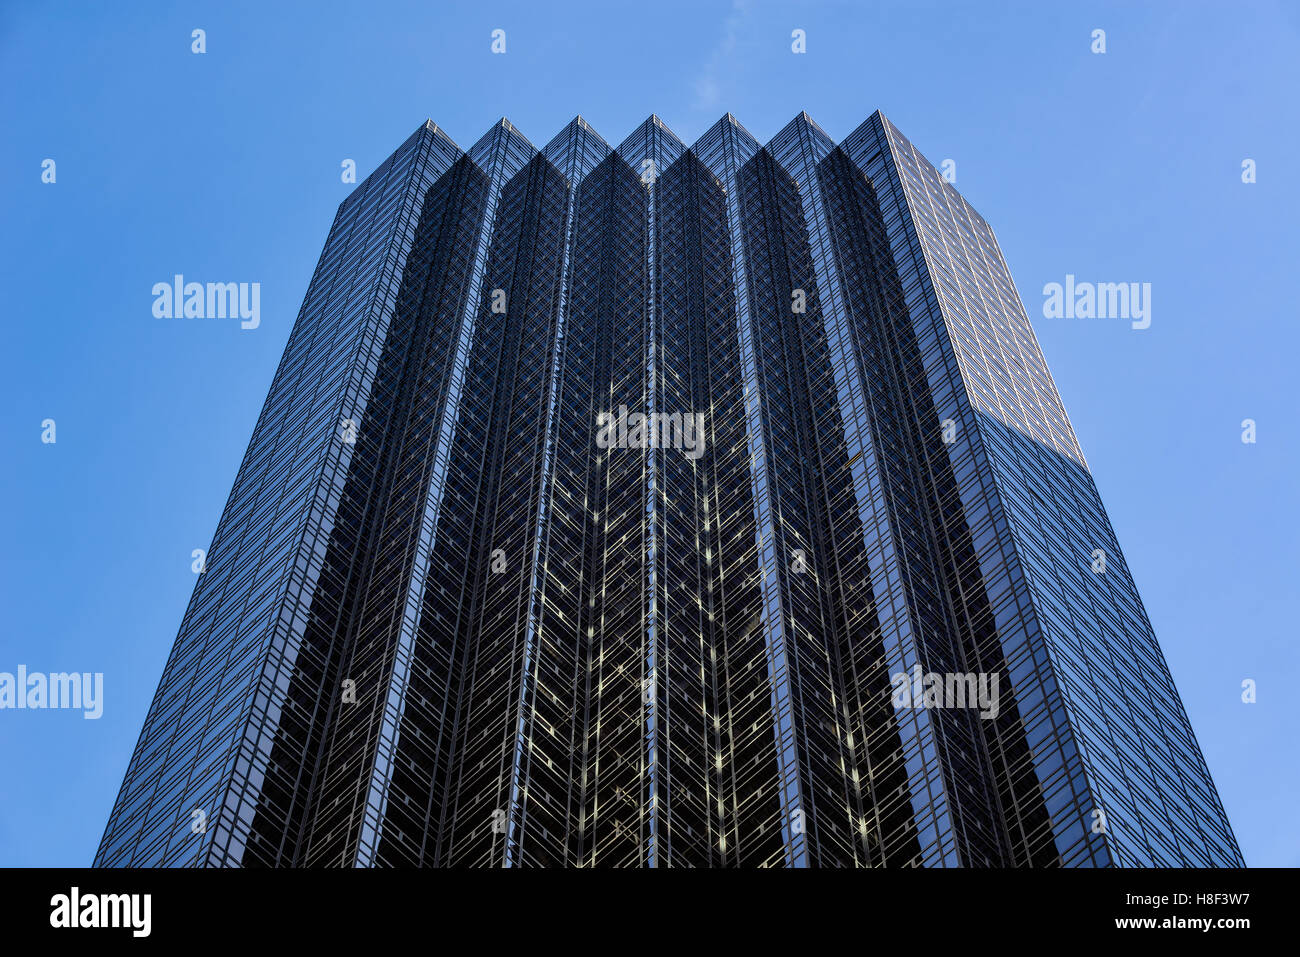 Facade of Trump Tower skyscraper with glass windows and blue sky. Midtown Manhattan, New York City - Stock Image